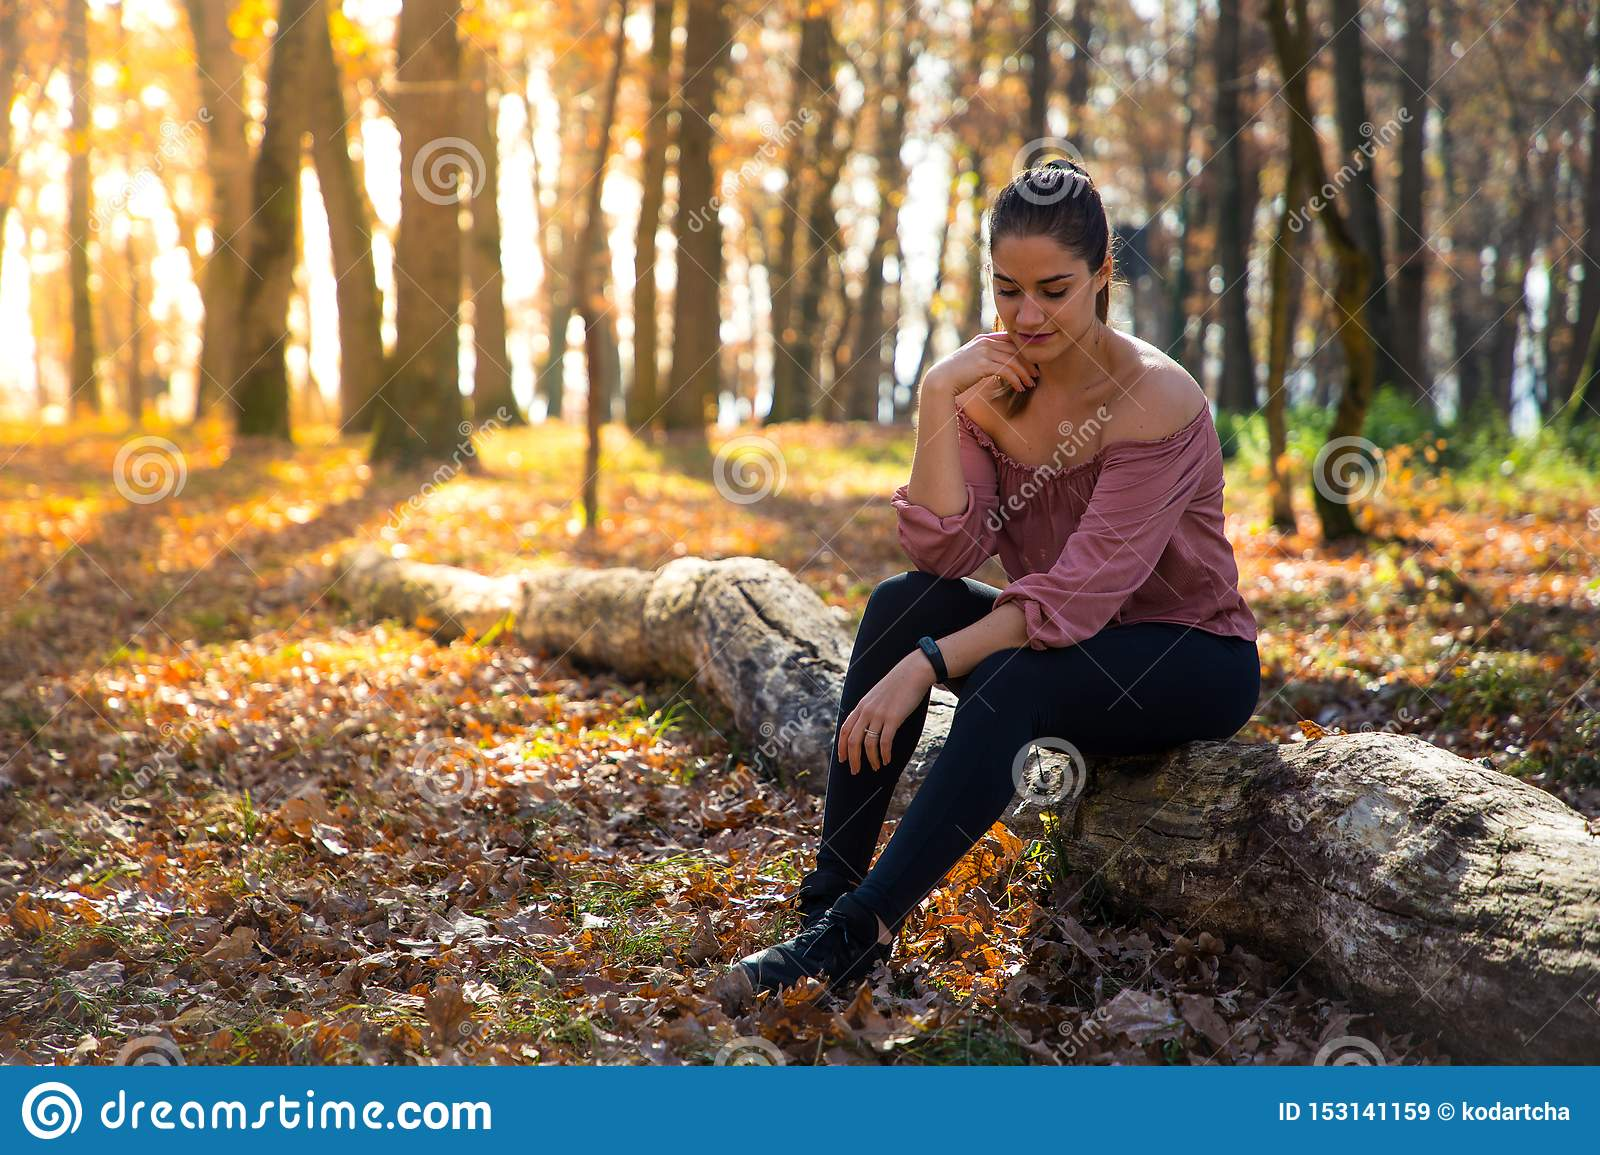 Beautiful girl siting on a trunk with orange foliage and golden sunlight